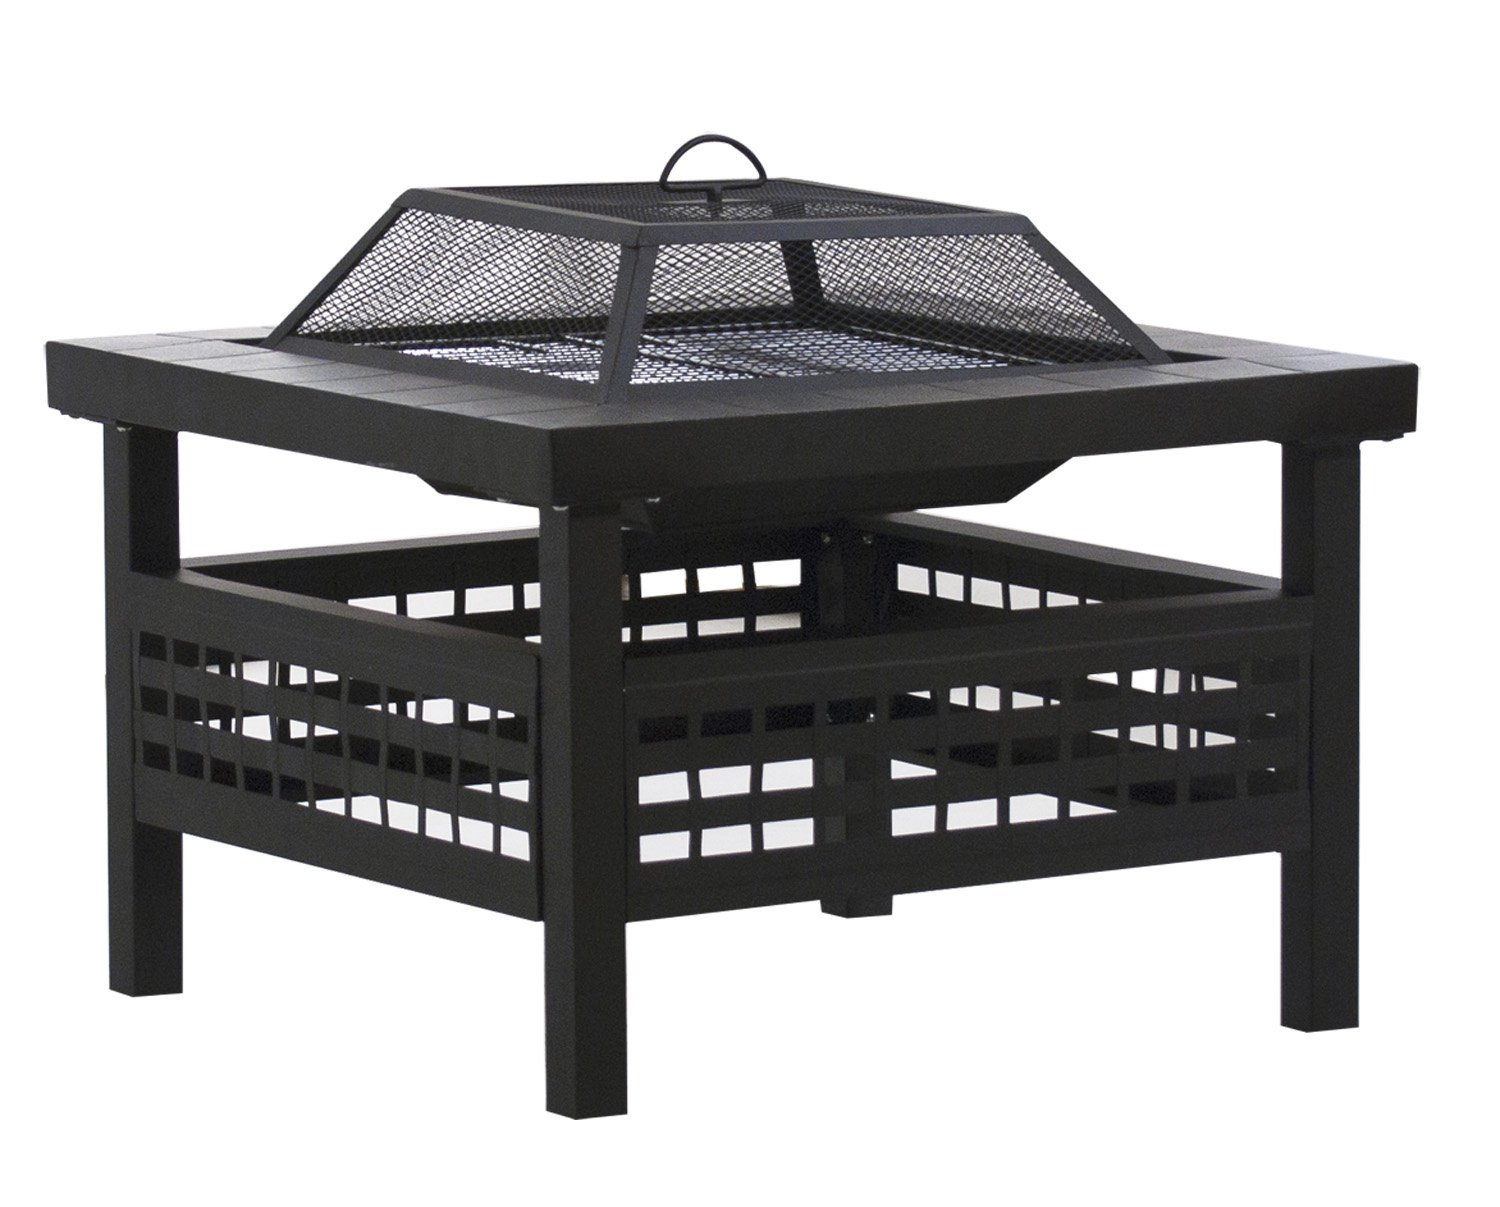 DeckMate 991046 Sonoma Outdoor Steel Fire Pit - Steel construction with high temperature resistant finish For burning wood and artificial logs Log grate and fire tool included - patio, outdoor-decor, fire-pits-outdoor-fireplaces - 71t0WGM3lEL -